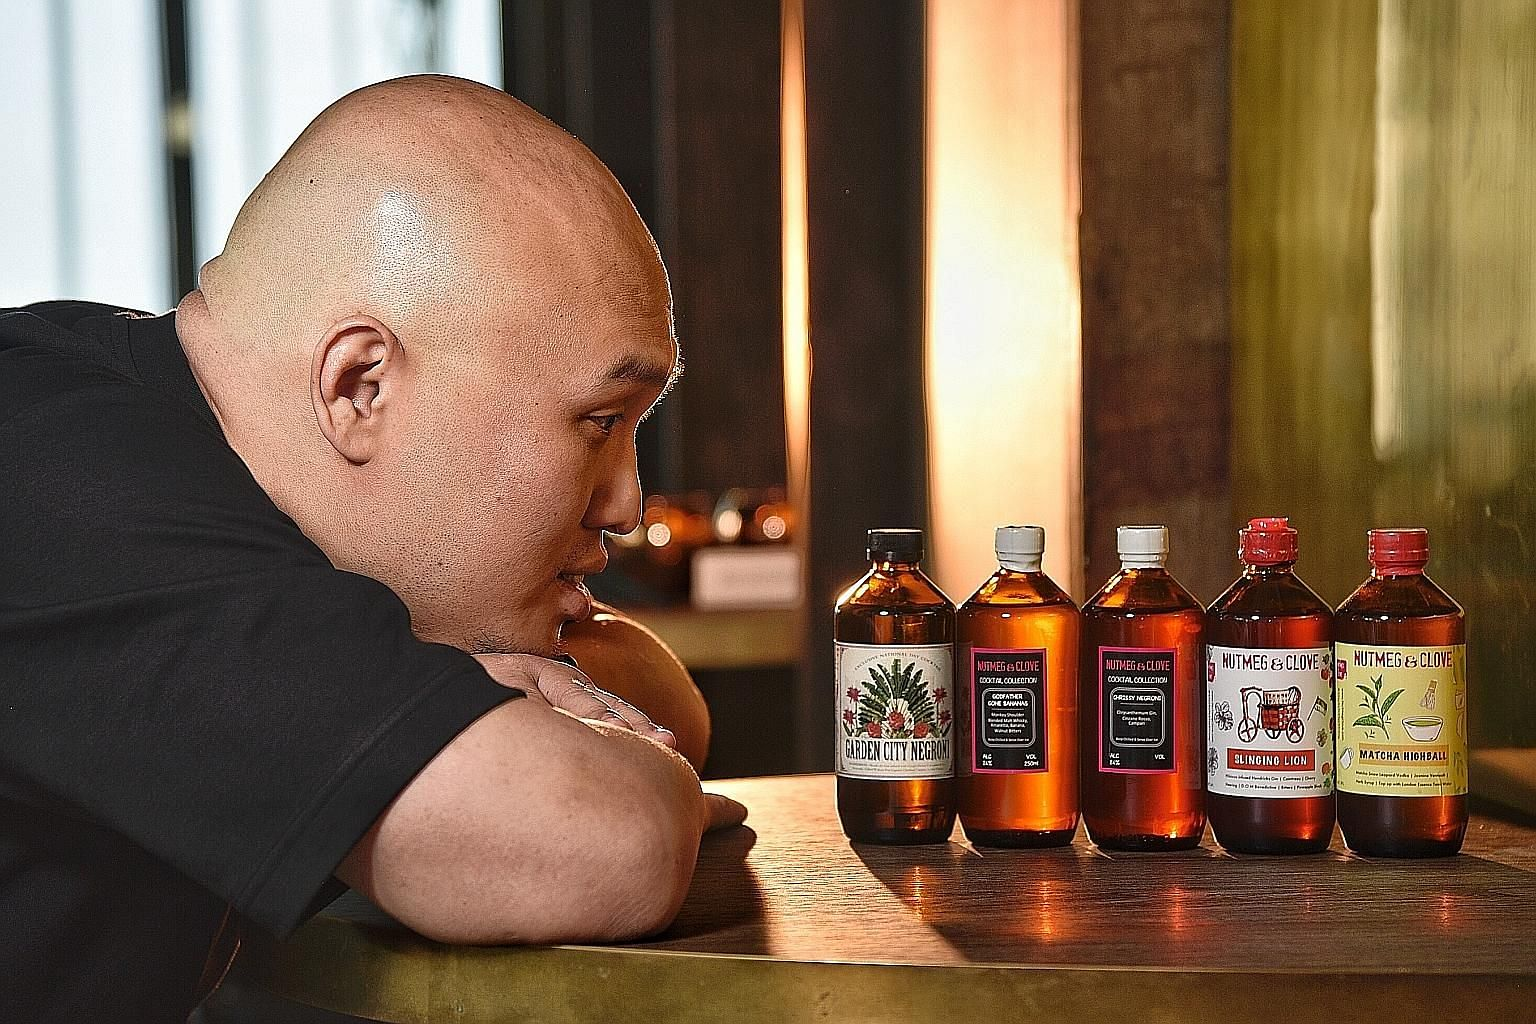 Nutmeg & Clove co-founder Colin Chia with the bar's bottled cocktails, which it has been selling since the start of its business in 2014. ST PHOTO: DESMOND WEE